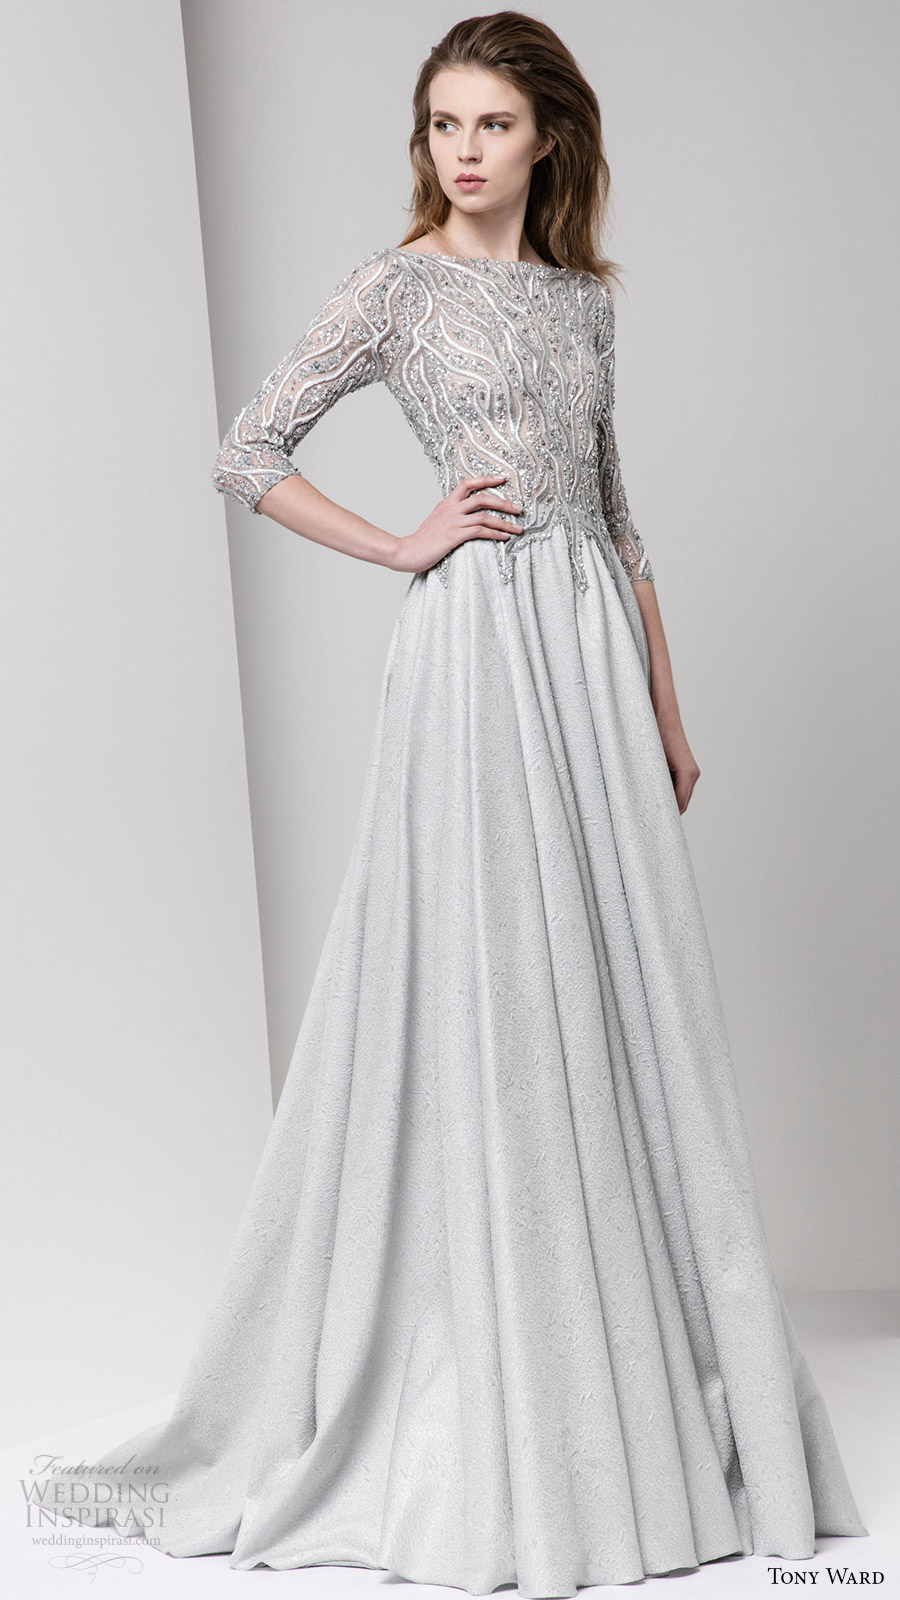 tony ward fall 2016 rtw 3 quarter sleeves bateau neck a line evening dress grey gray embellished bodice